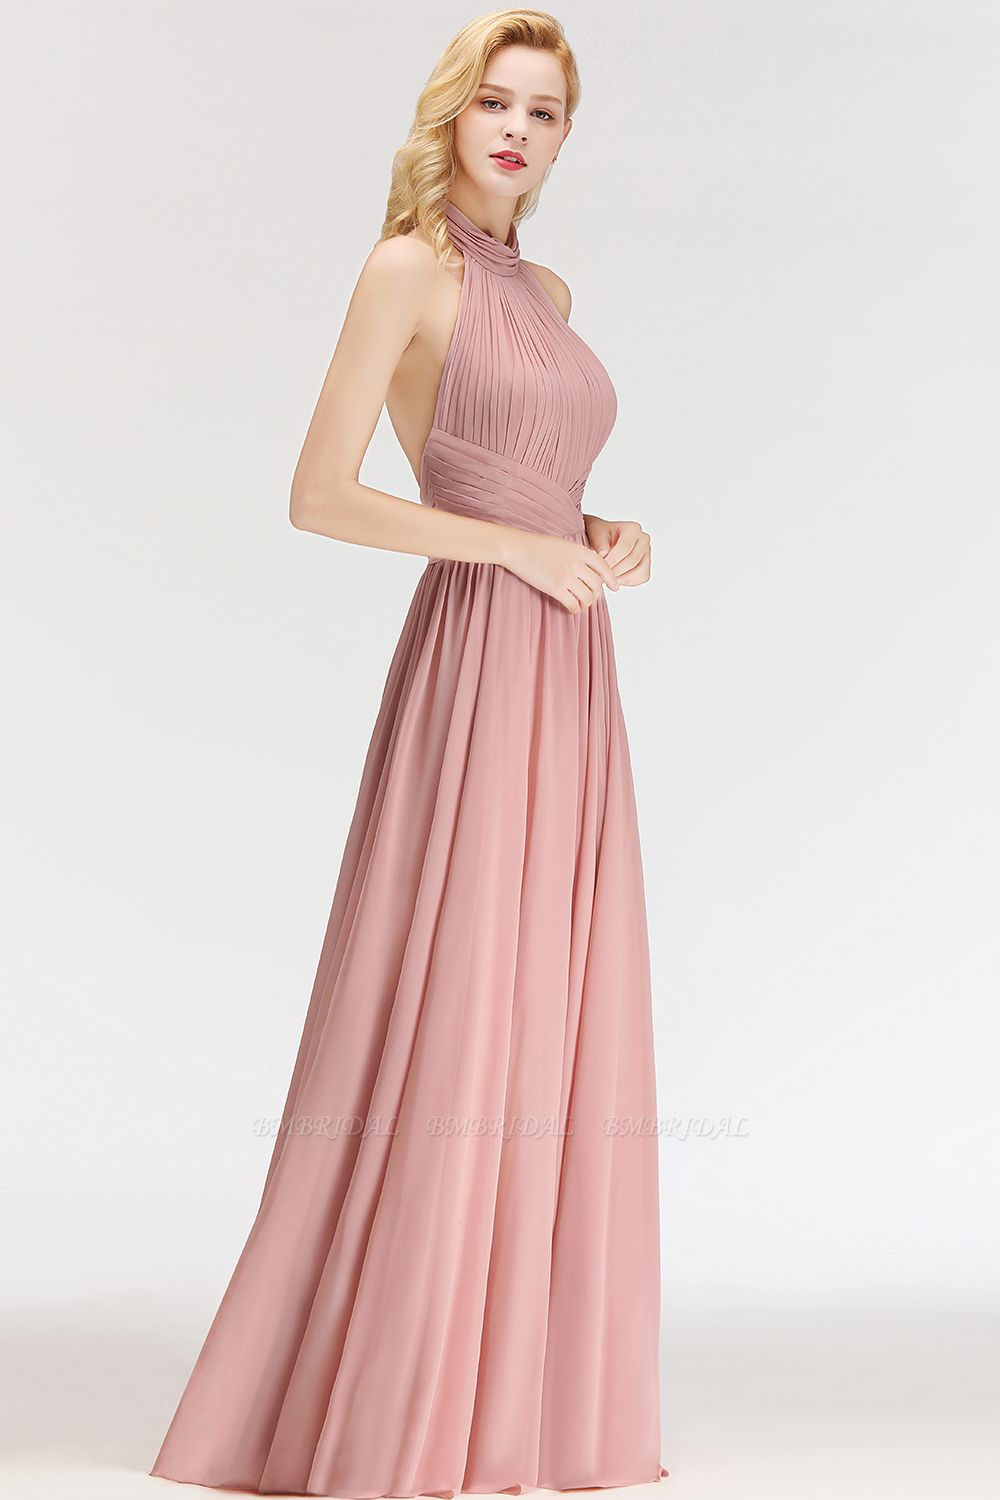 Bmbridal Gorgeous High Neck Halter Backless Bridesmaid Dress Dusty Rose Chiffon Maid Of Honor Dress Backless Bridesmaid Dress Dusty Rose Dress Maid Of Honour Dresses